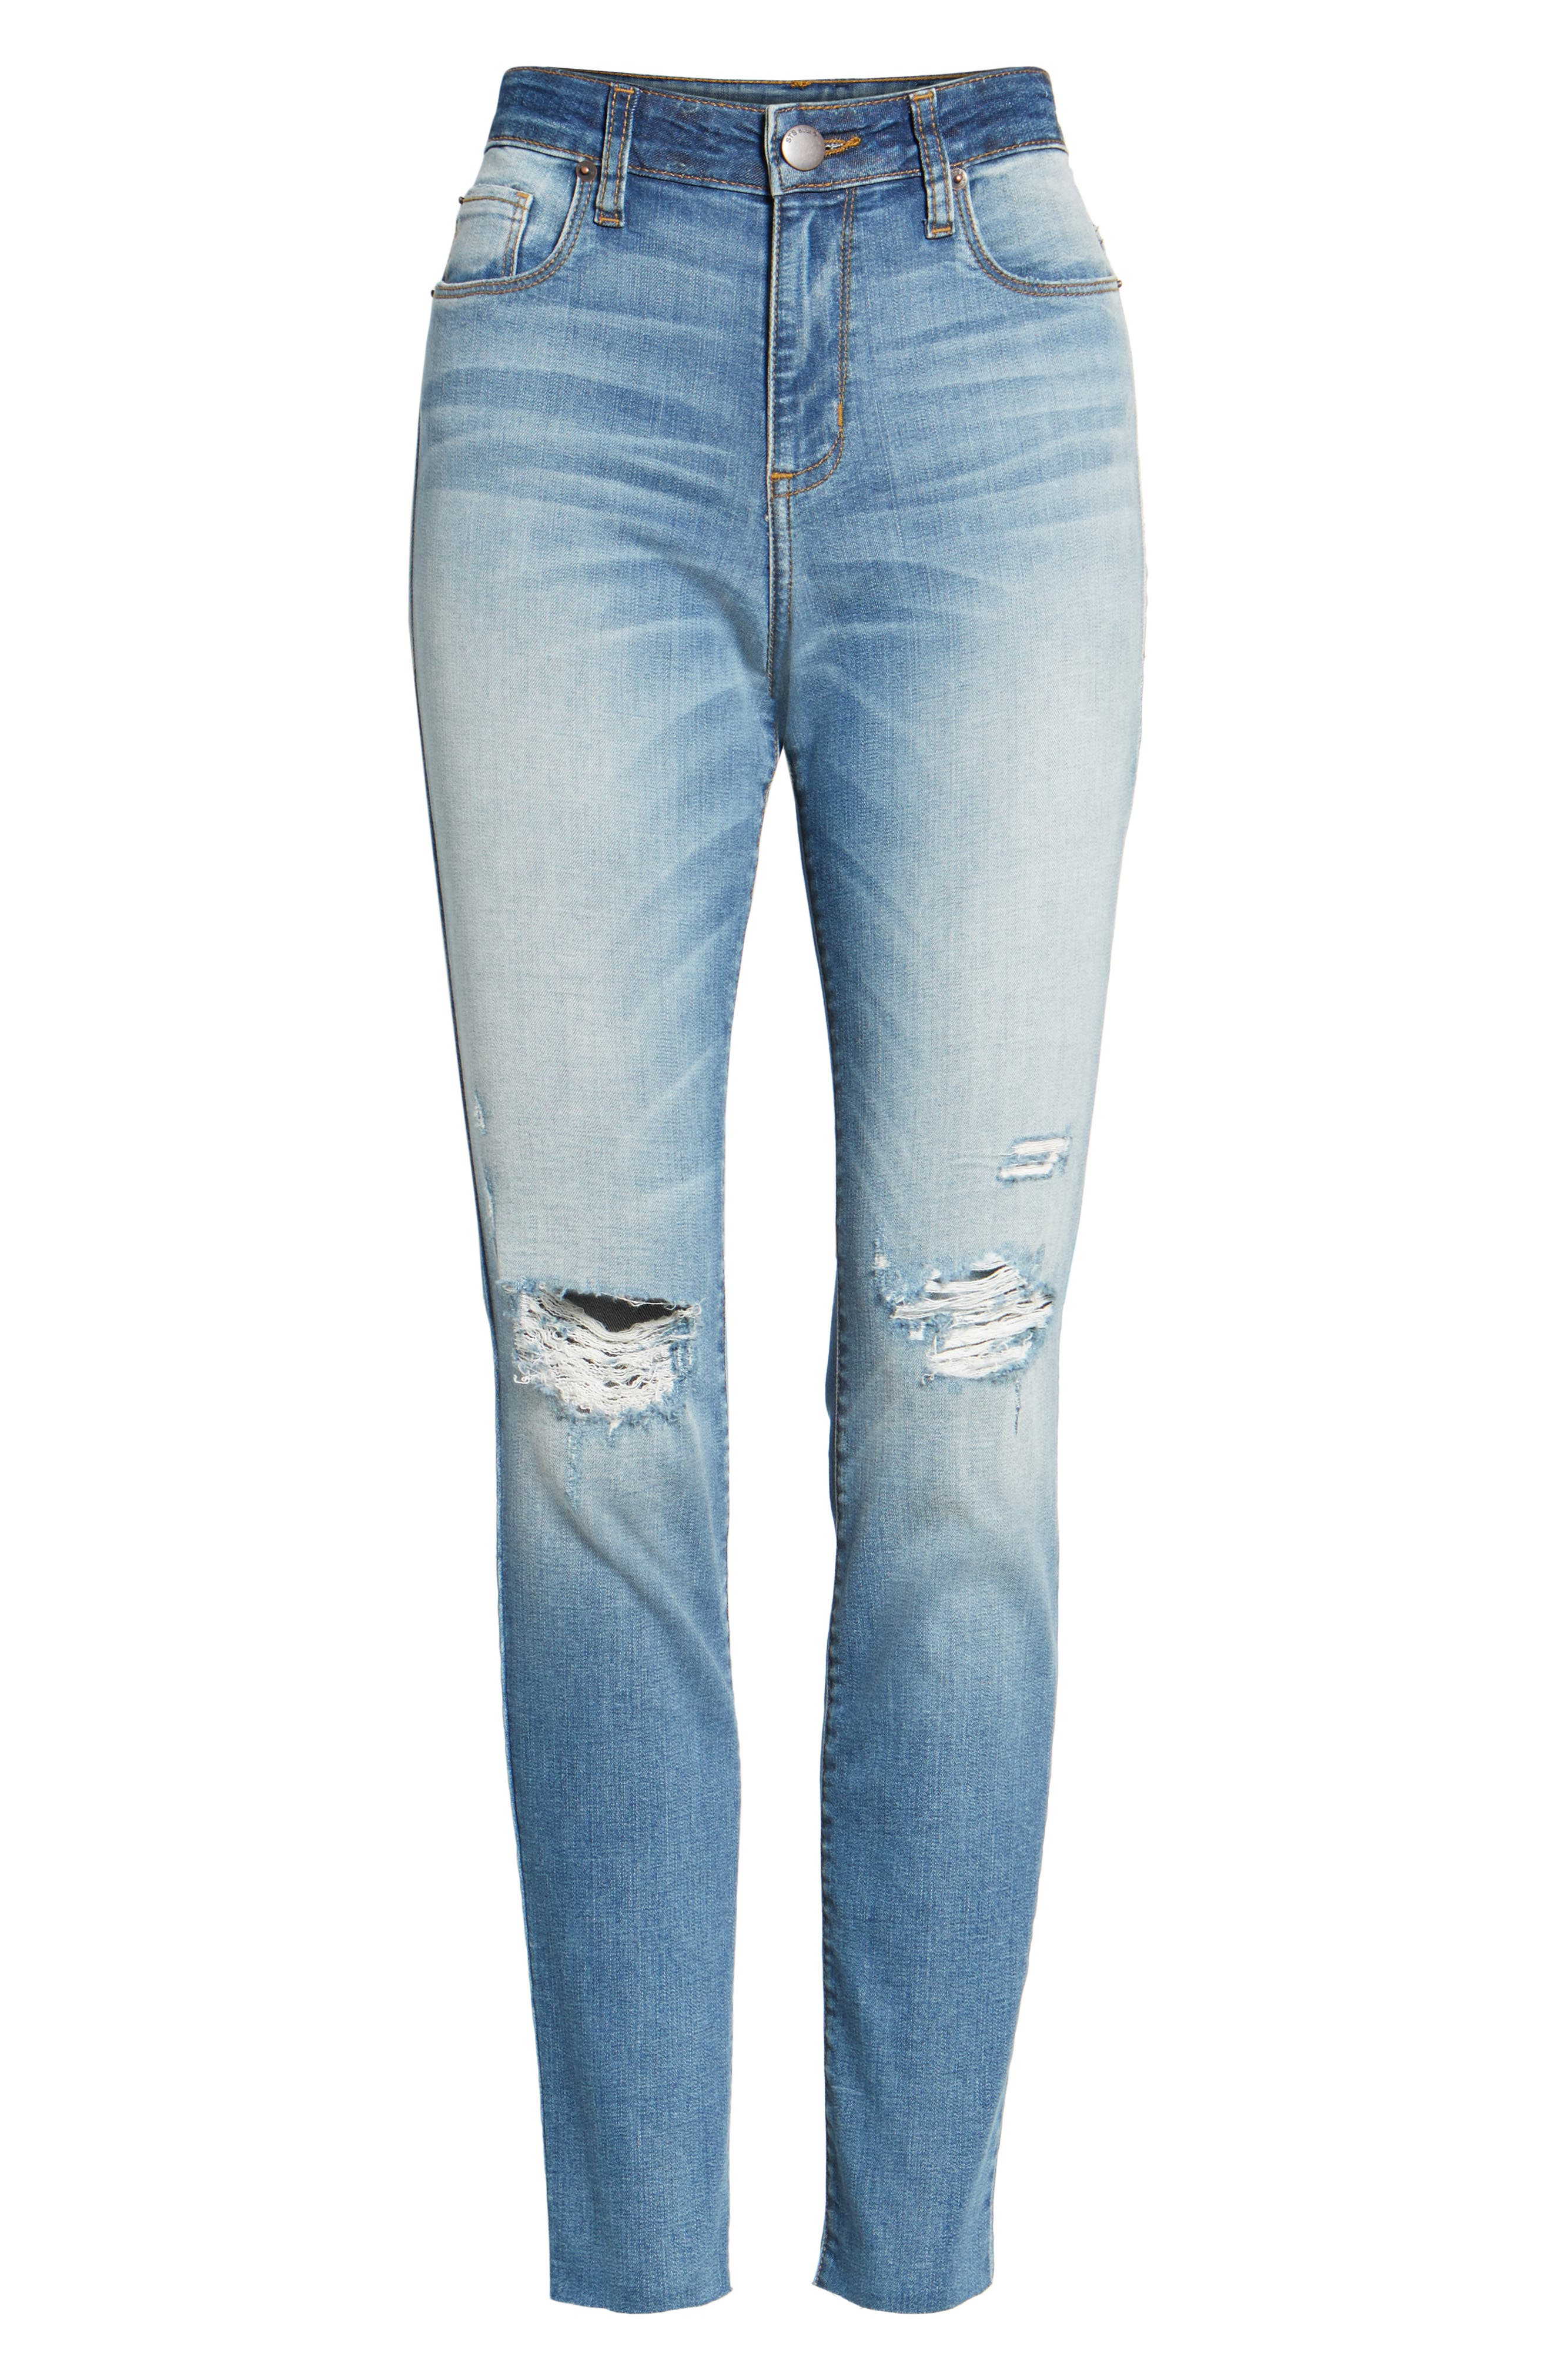 Ellie Ripped High Waist Skinny Jeans,                             Alternate thumbnail 6, color,                             Hill Grove